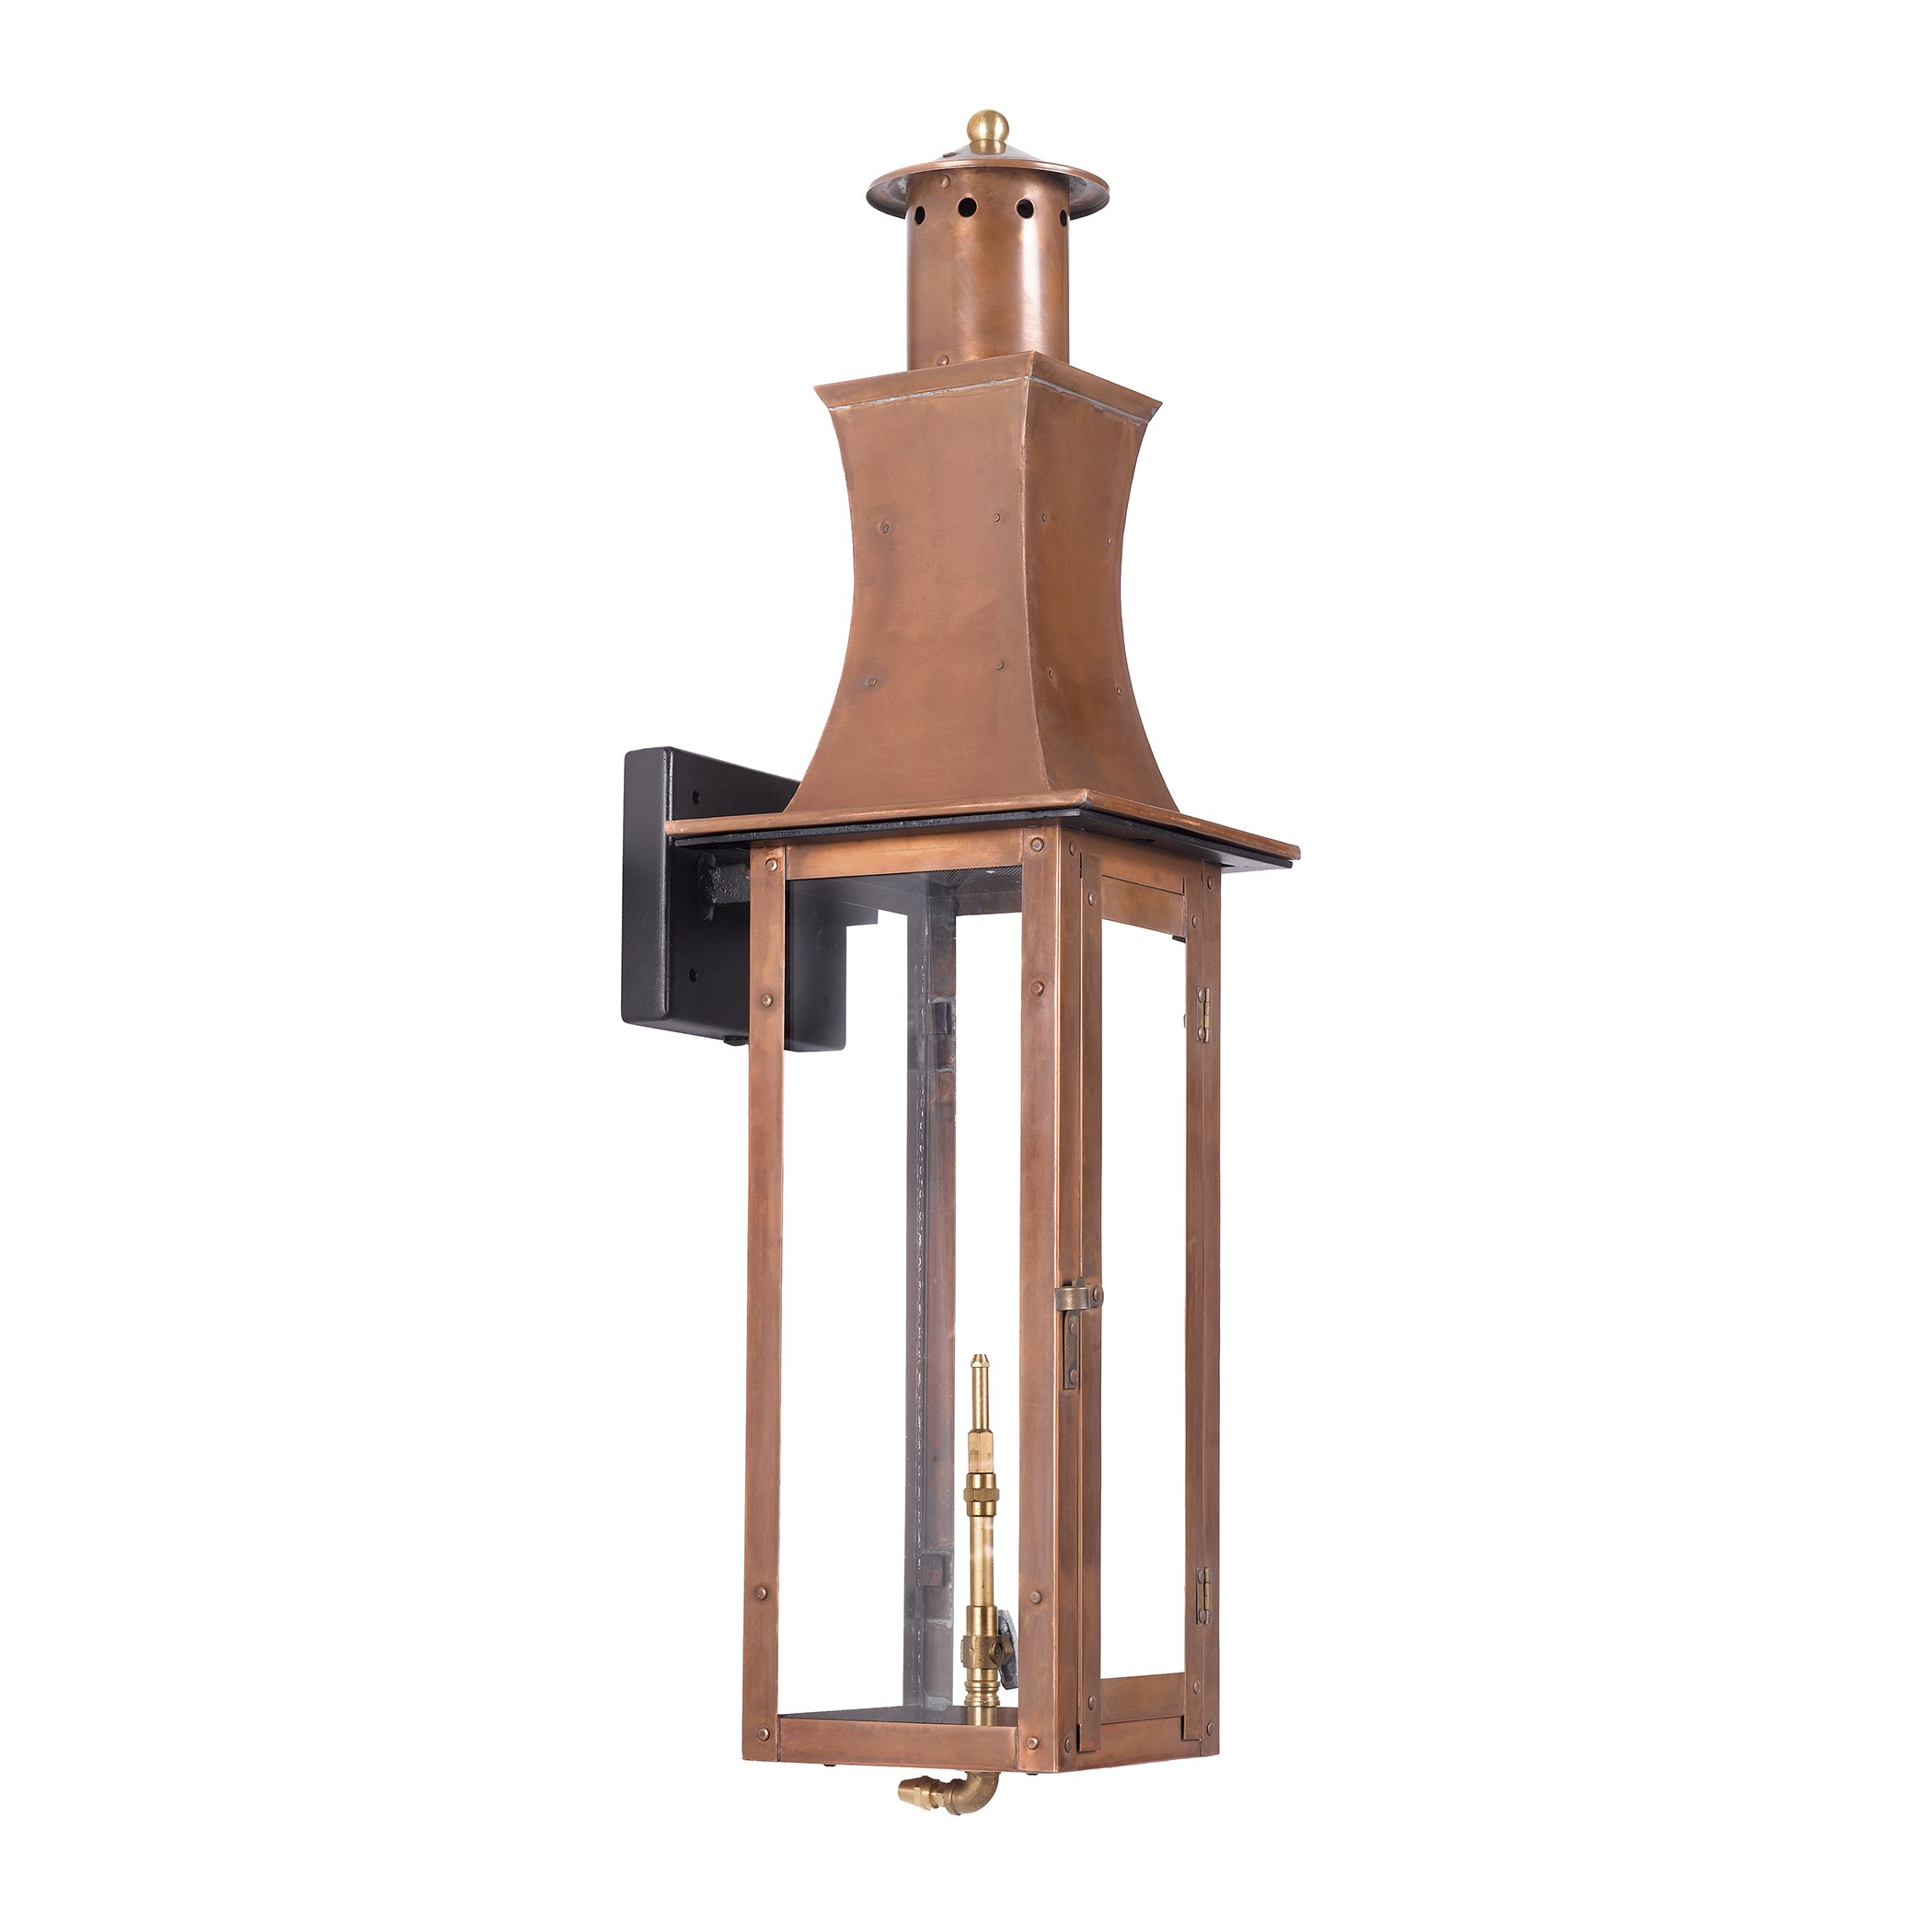 Outdoor Gas Wall Lantern Maryville Collection In Solid Brass In An Aged Copper Finish. by Elk ...